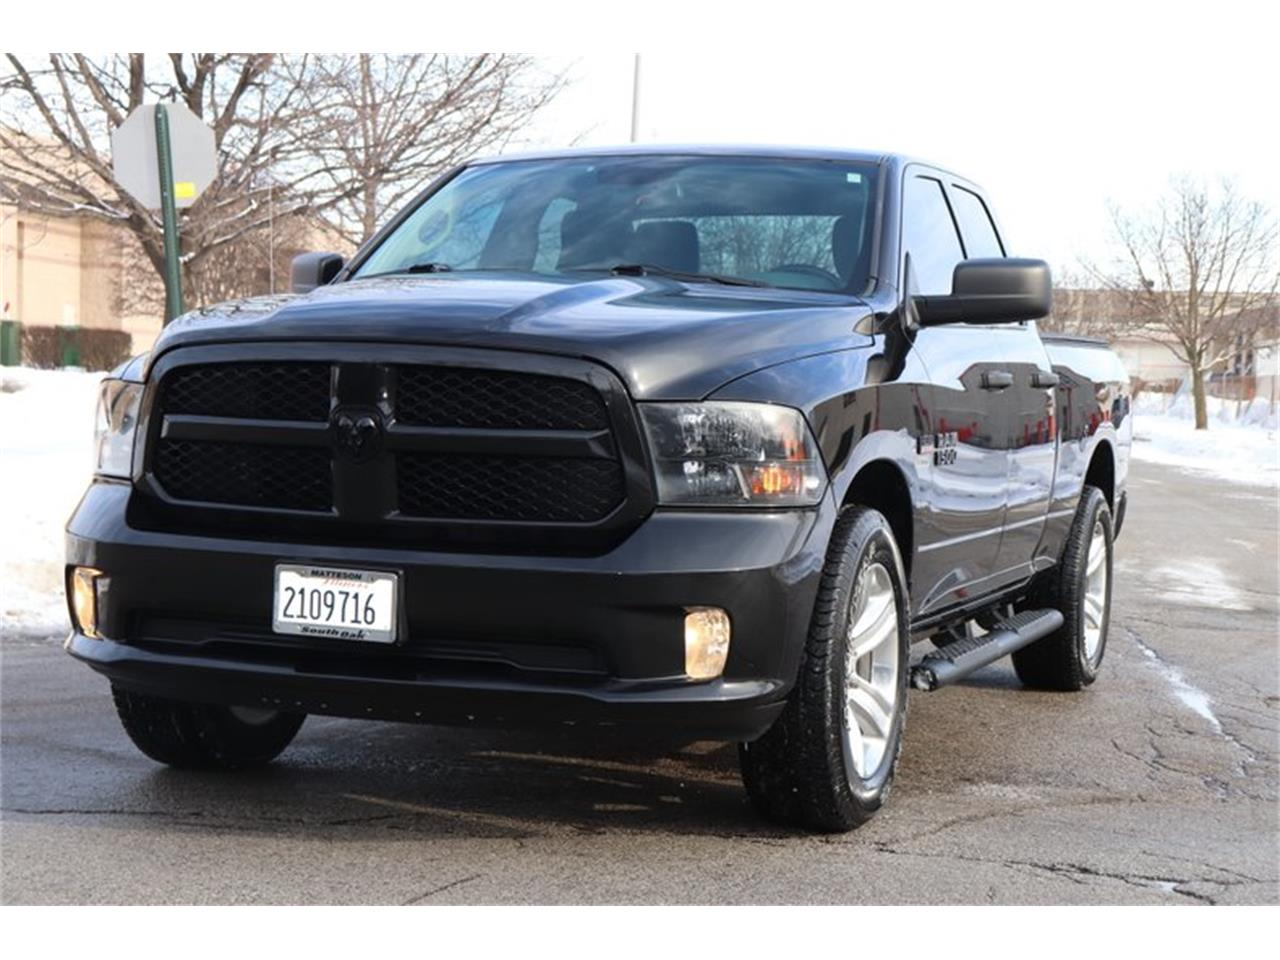 2015 Dodge Ram 1500 for sale in Alsip, IL – photo 5